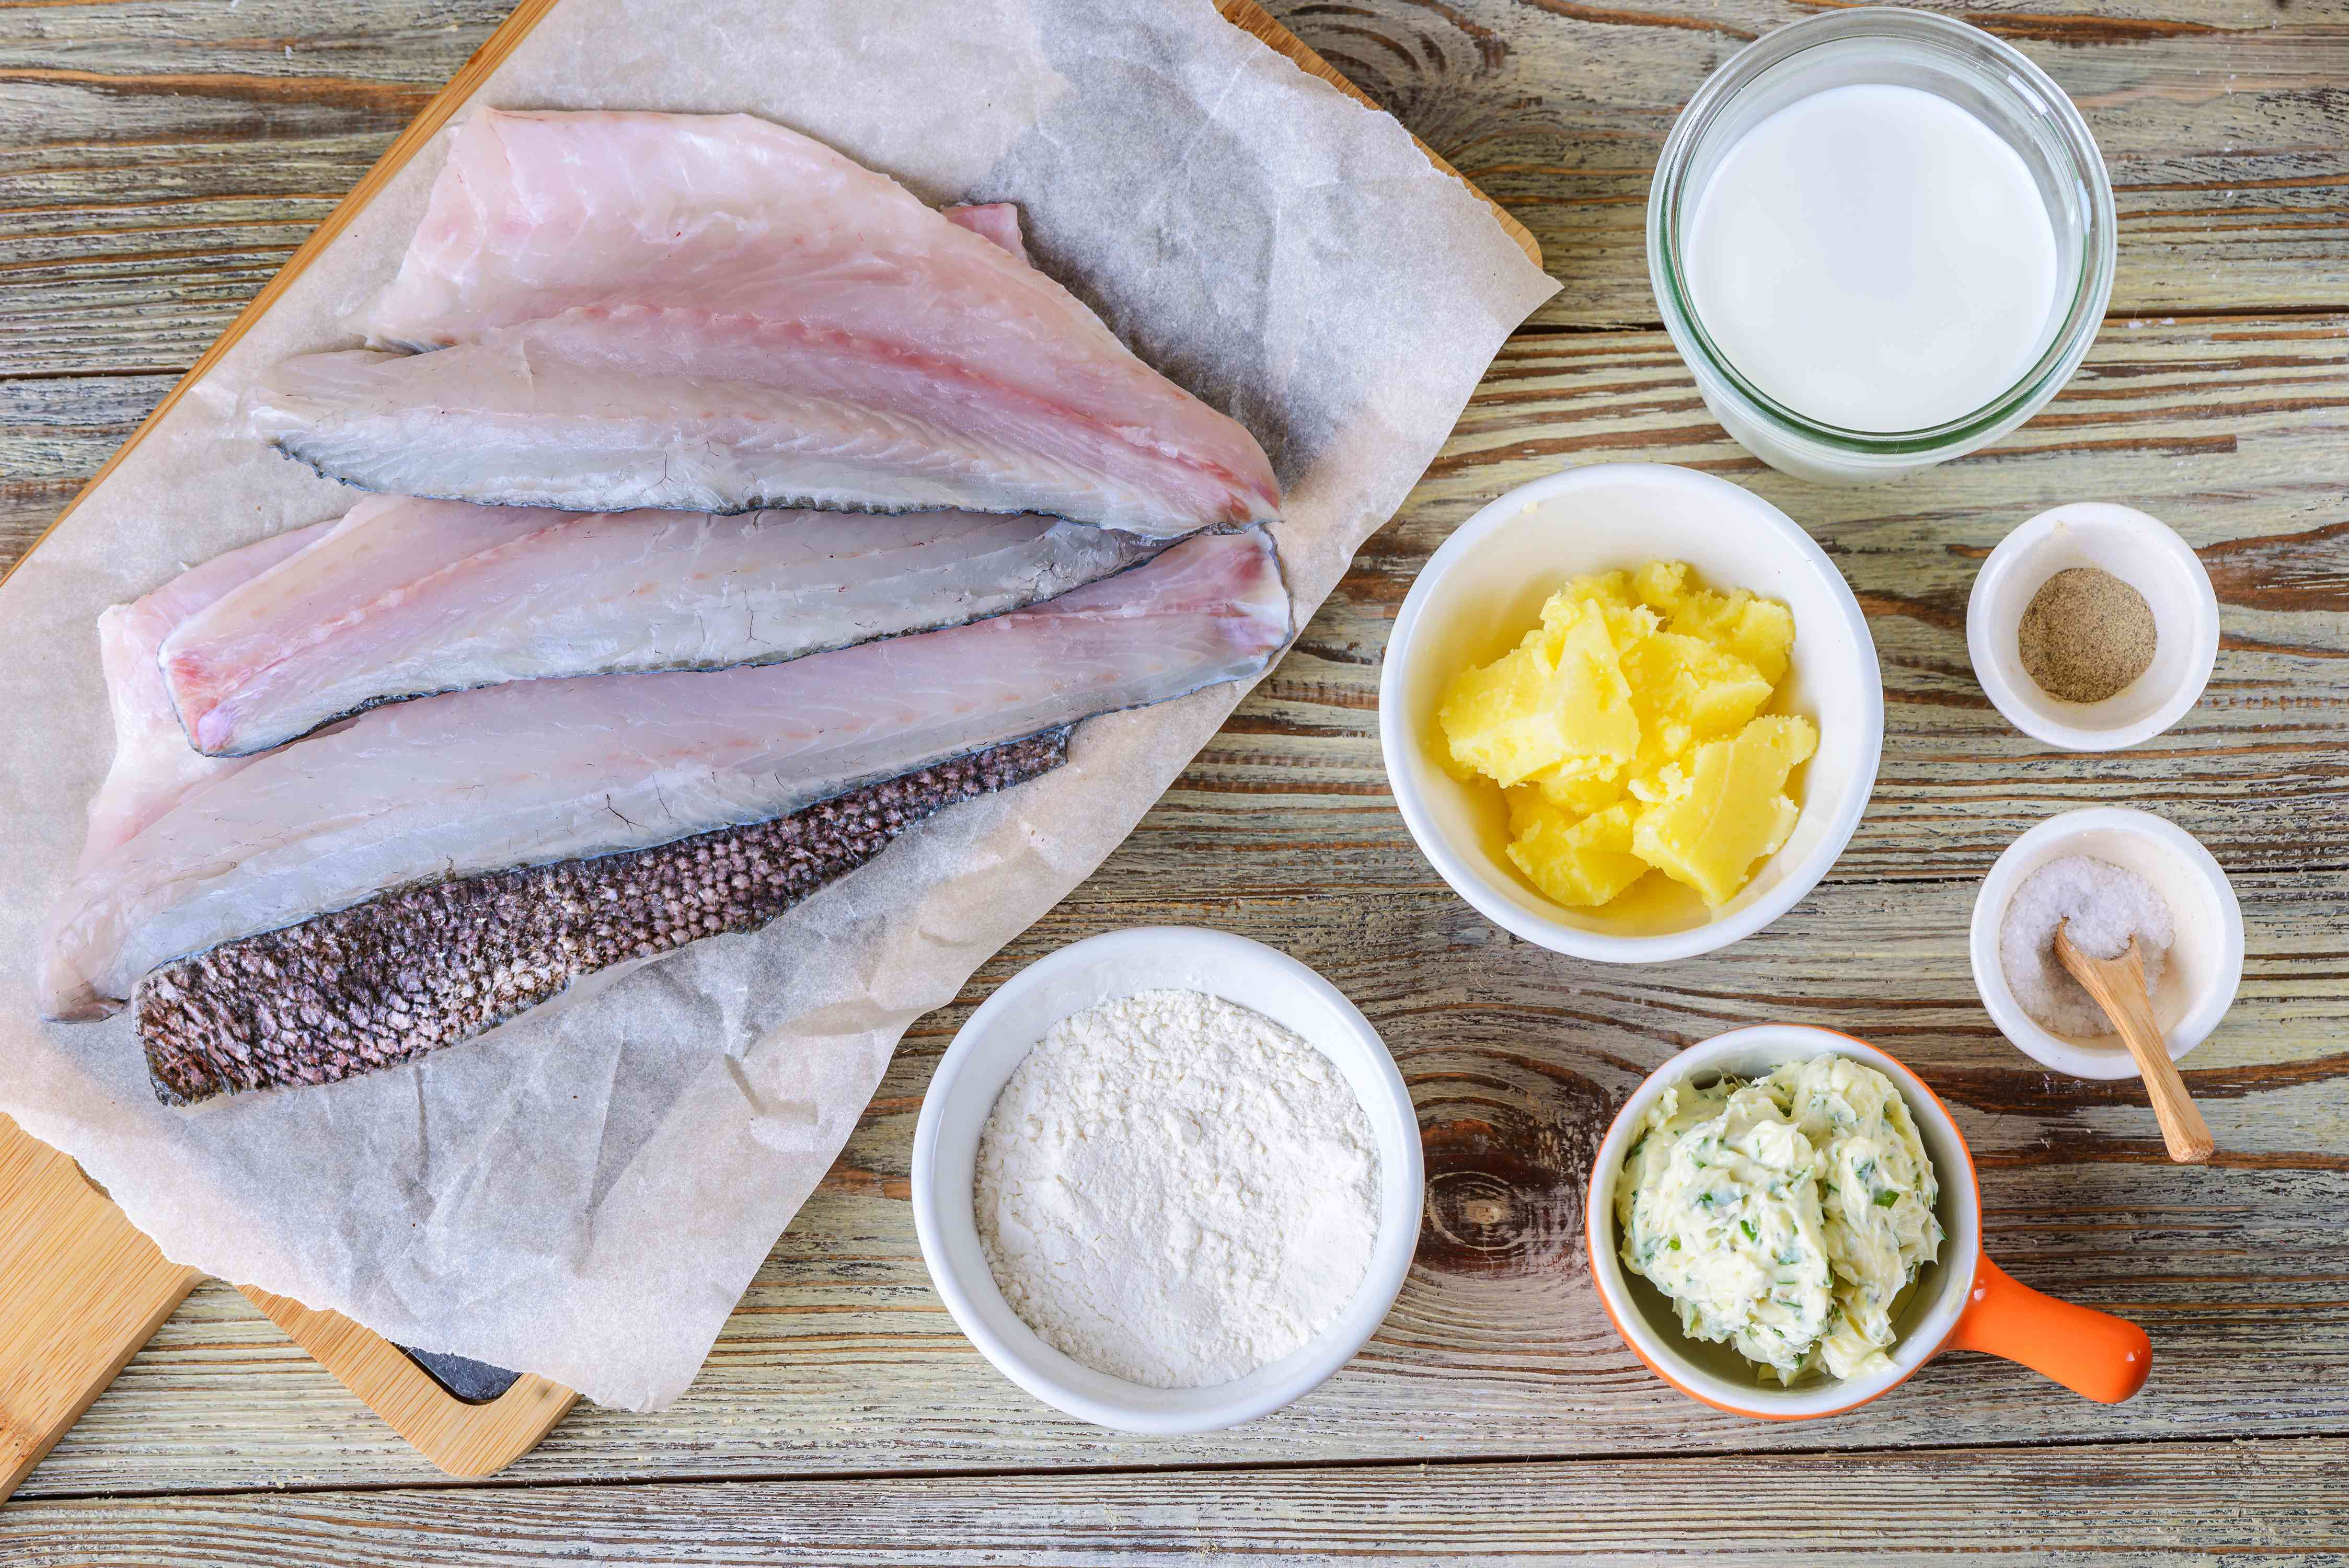 Ingredients for sauteed bass with lemon herb butter